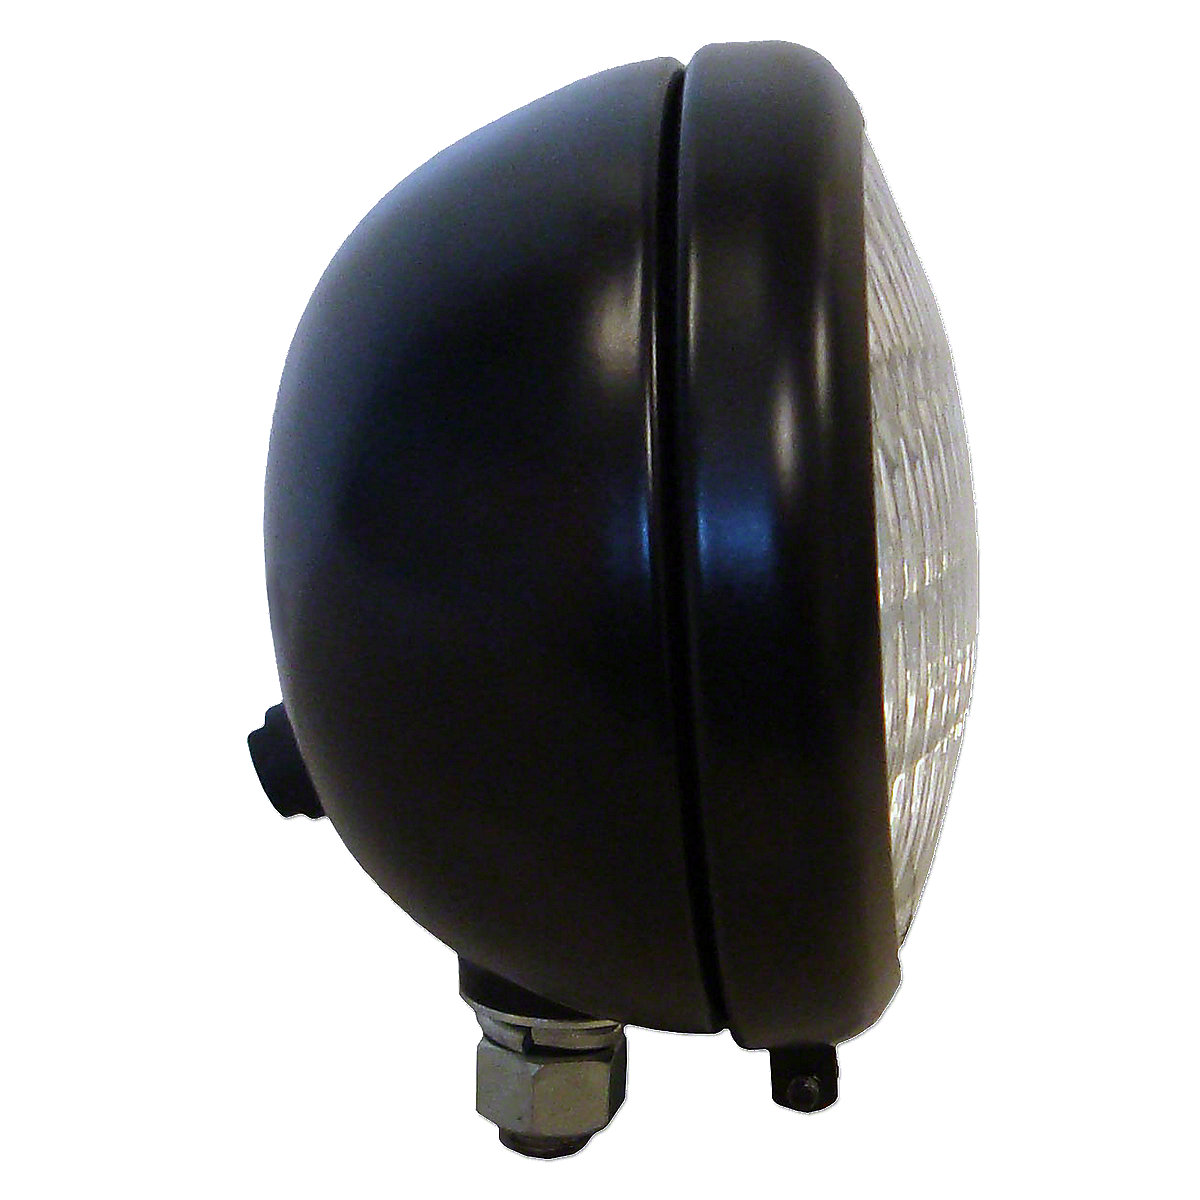 12 VOLT SEALED BEAM LIGHT --- Oliver Applications: 550 (SN 60501 & UP), 660, 770 (SN 81629 & UP), 880 (SN 81629 & UP), 950, 990, 995 --- 4.5 DIAMETER, 1-1/8 STUD LENGTH